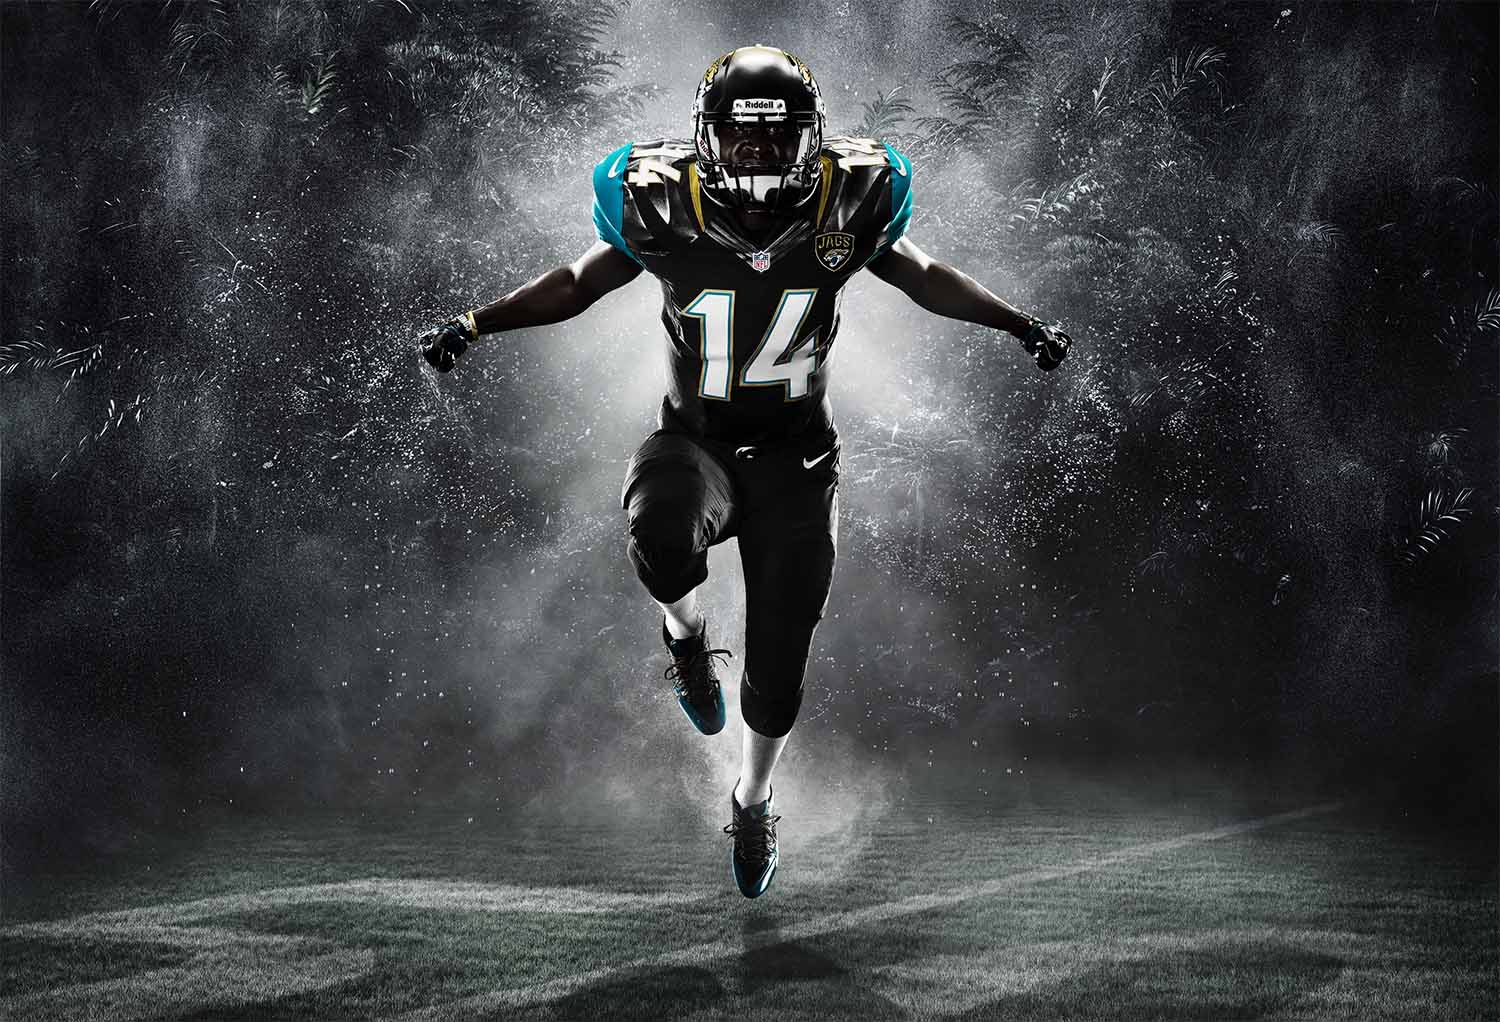 Jacksonville Jaguars nfl football wallpaper background 1500x1022